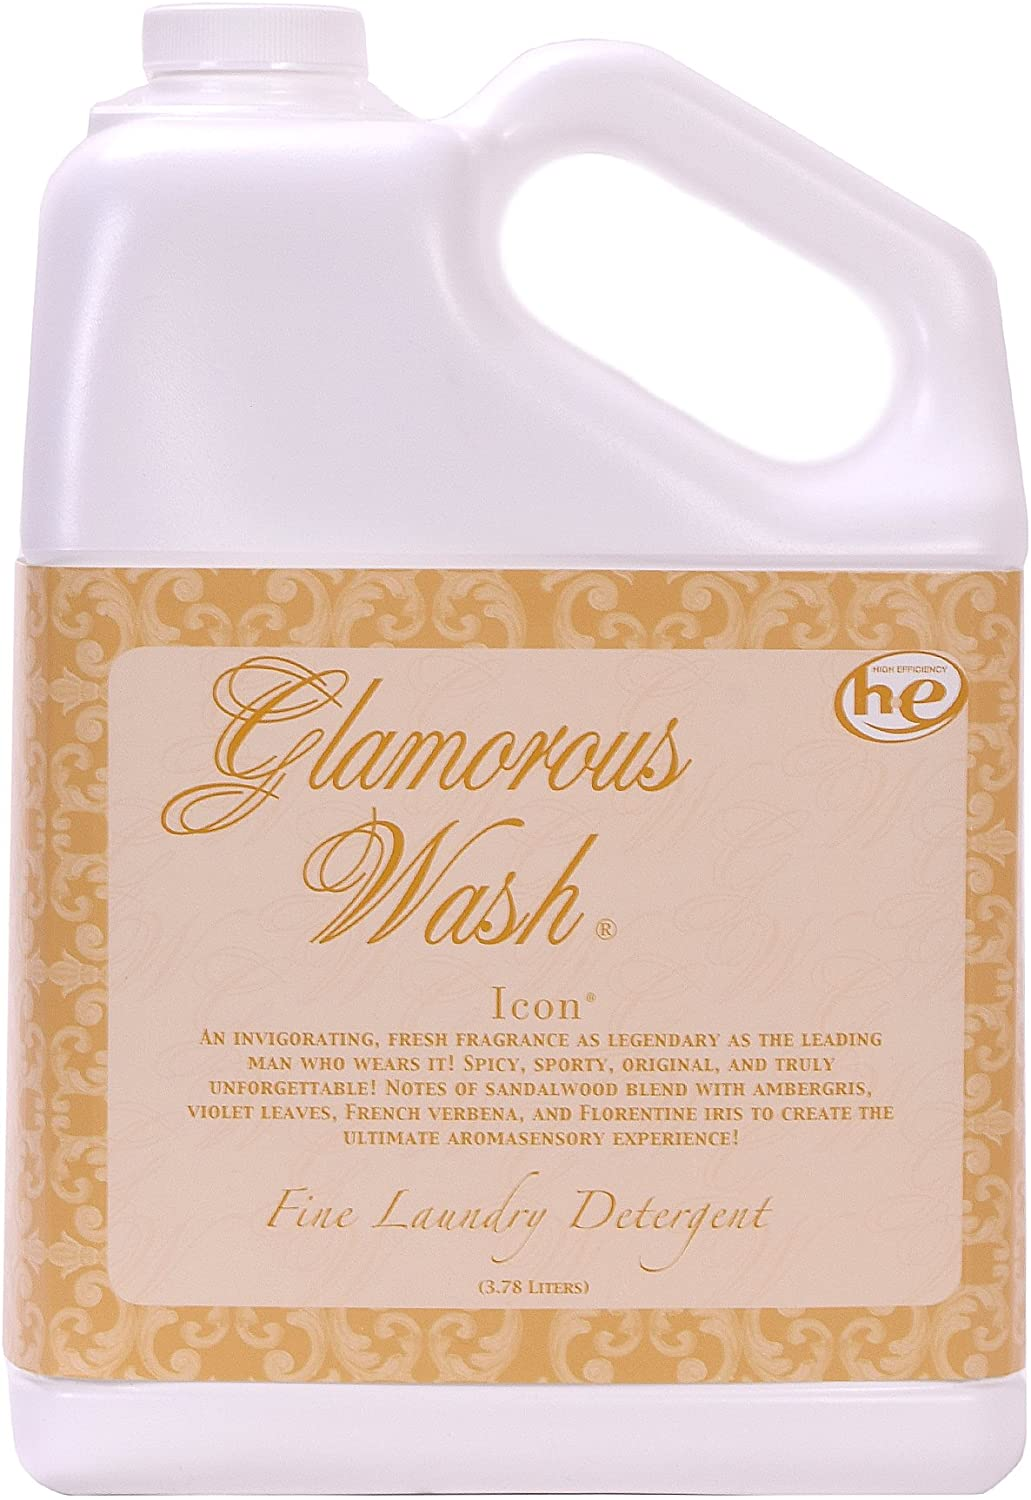 ICON Fragrance Glamorous Wash 128 oz (Gallon) Fine Laundry Detergent by Tyler Candles